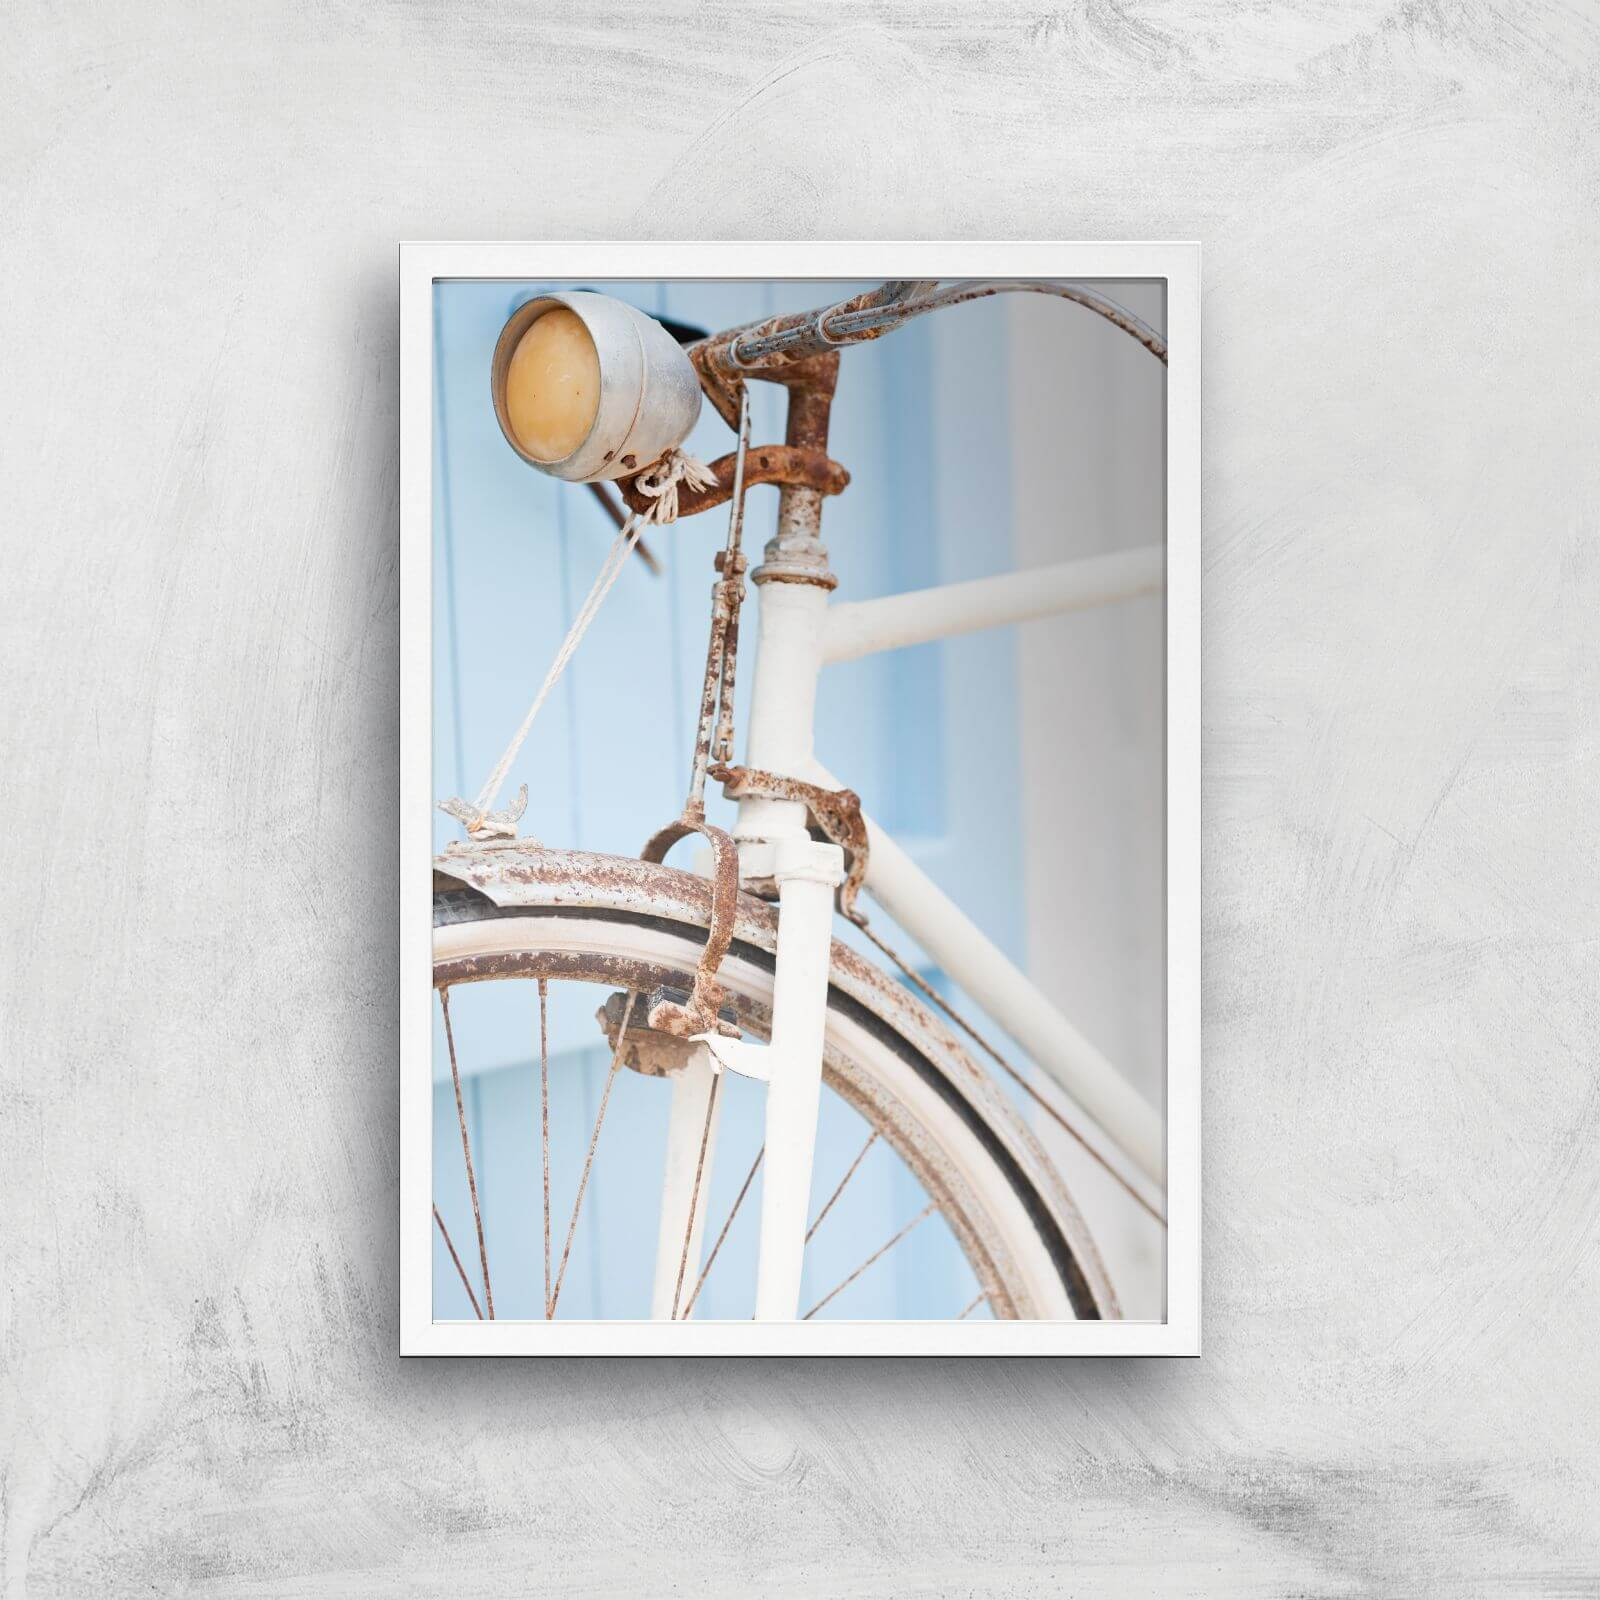 Rusty Bicycle Giclee Art Print   A4   White Frame